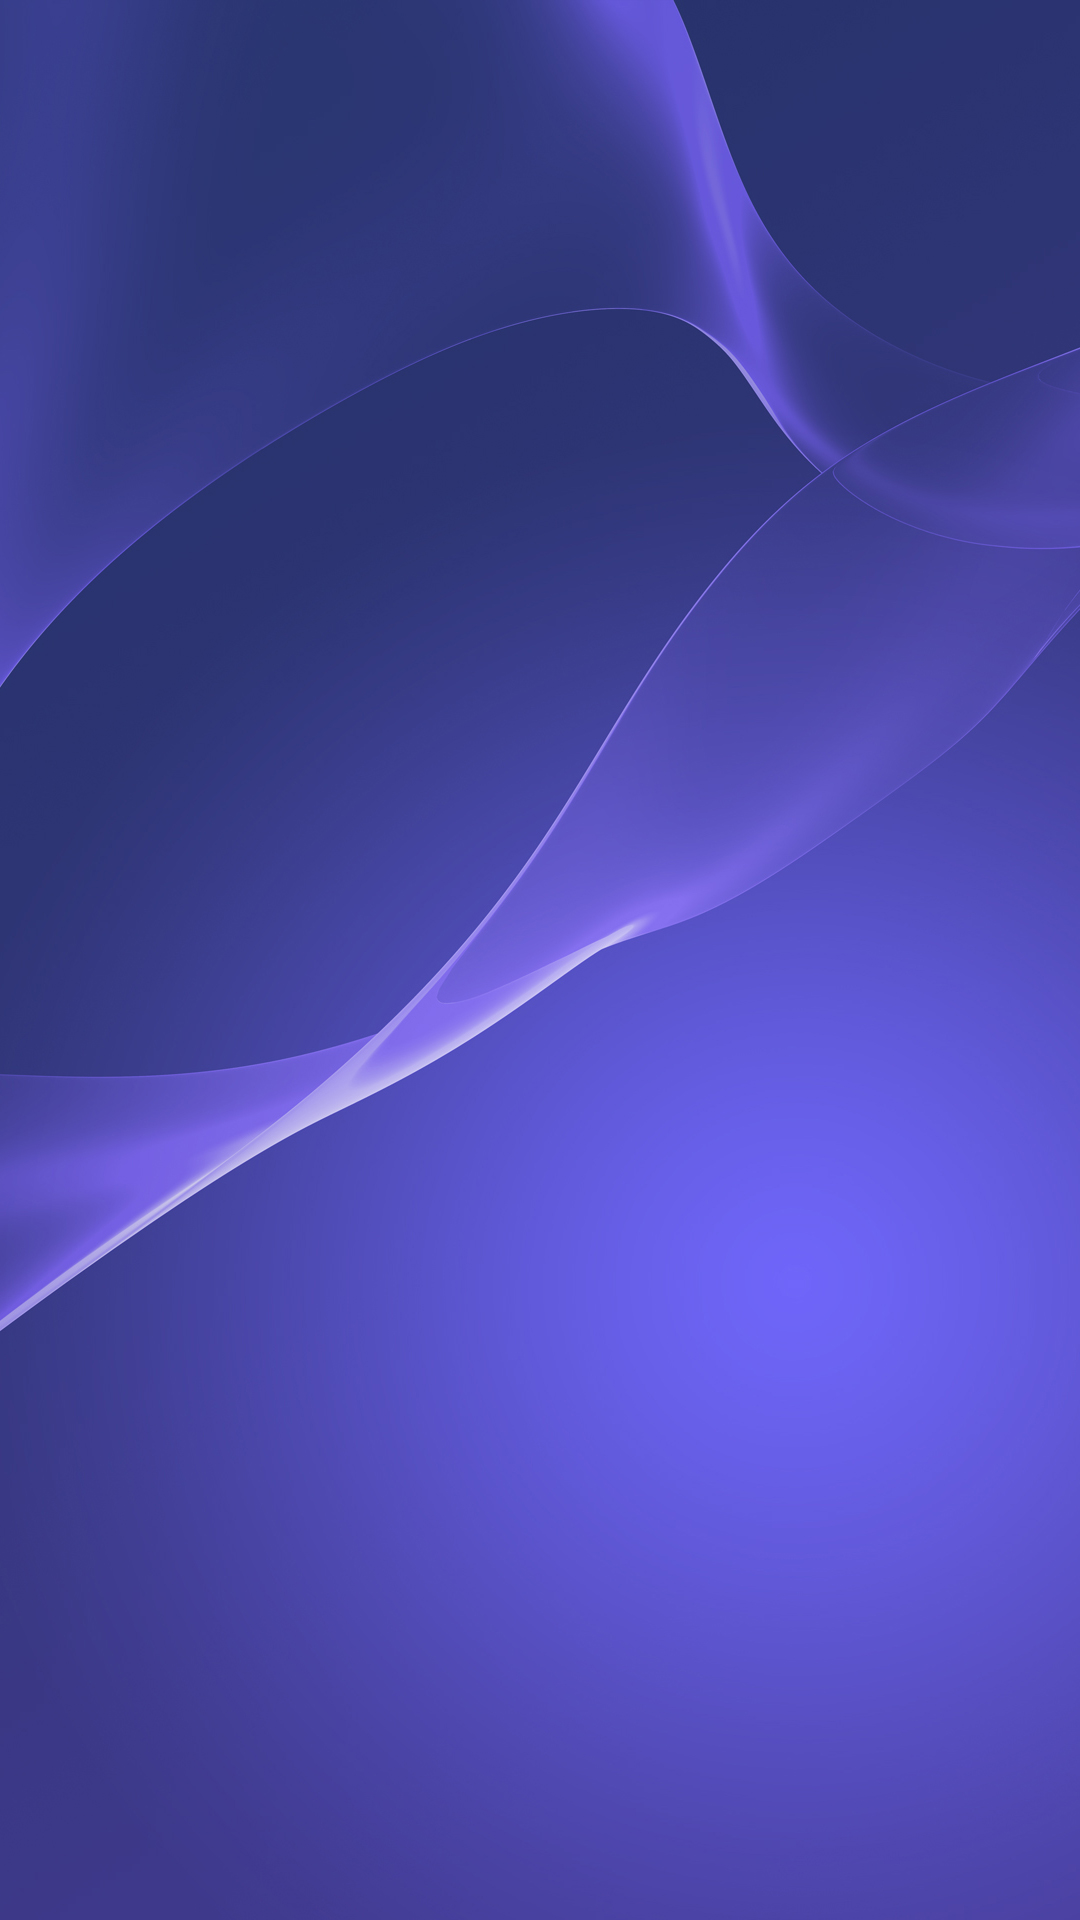 Hd wallpaper xperia z3 - The Official Galaxy S5 Xperia Z2 And Lg G Pro 2 Wallpapers